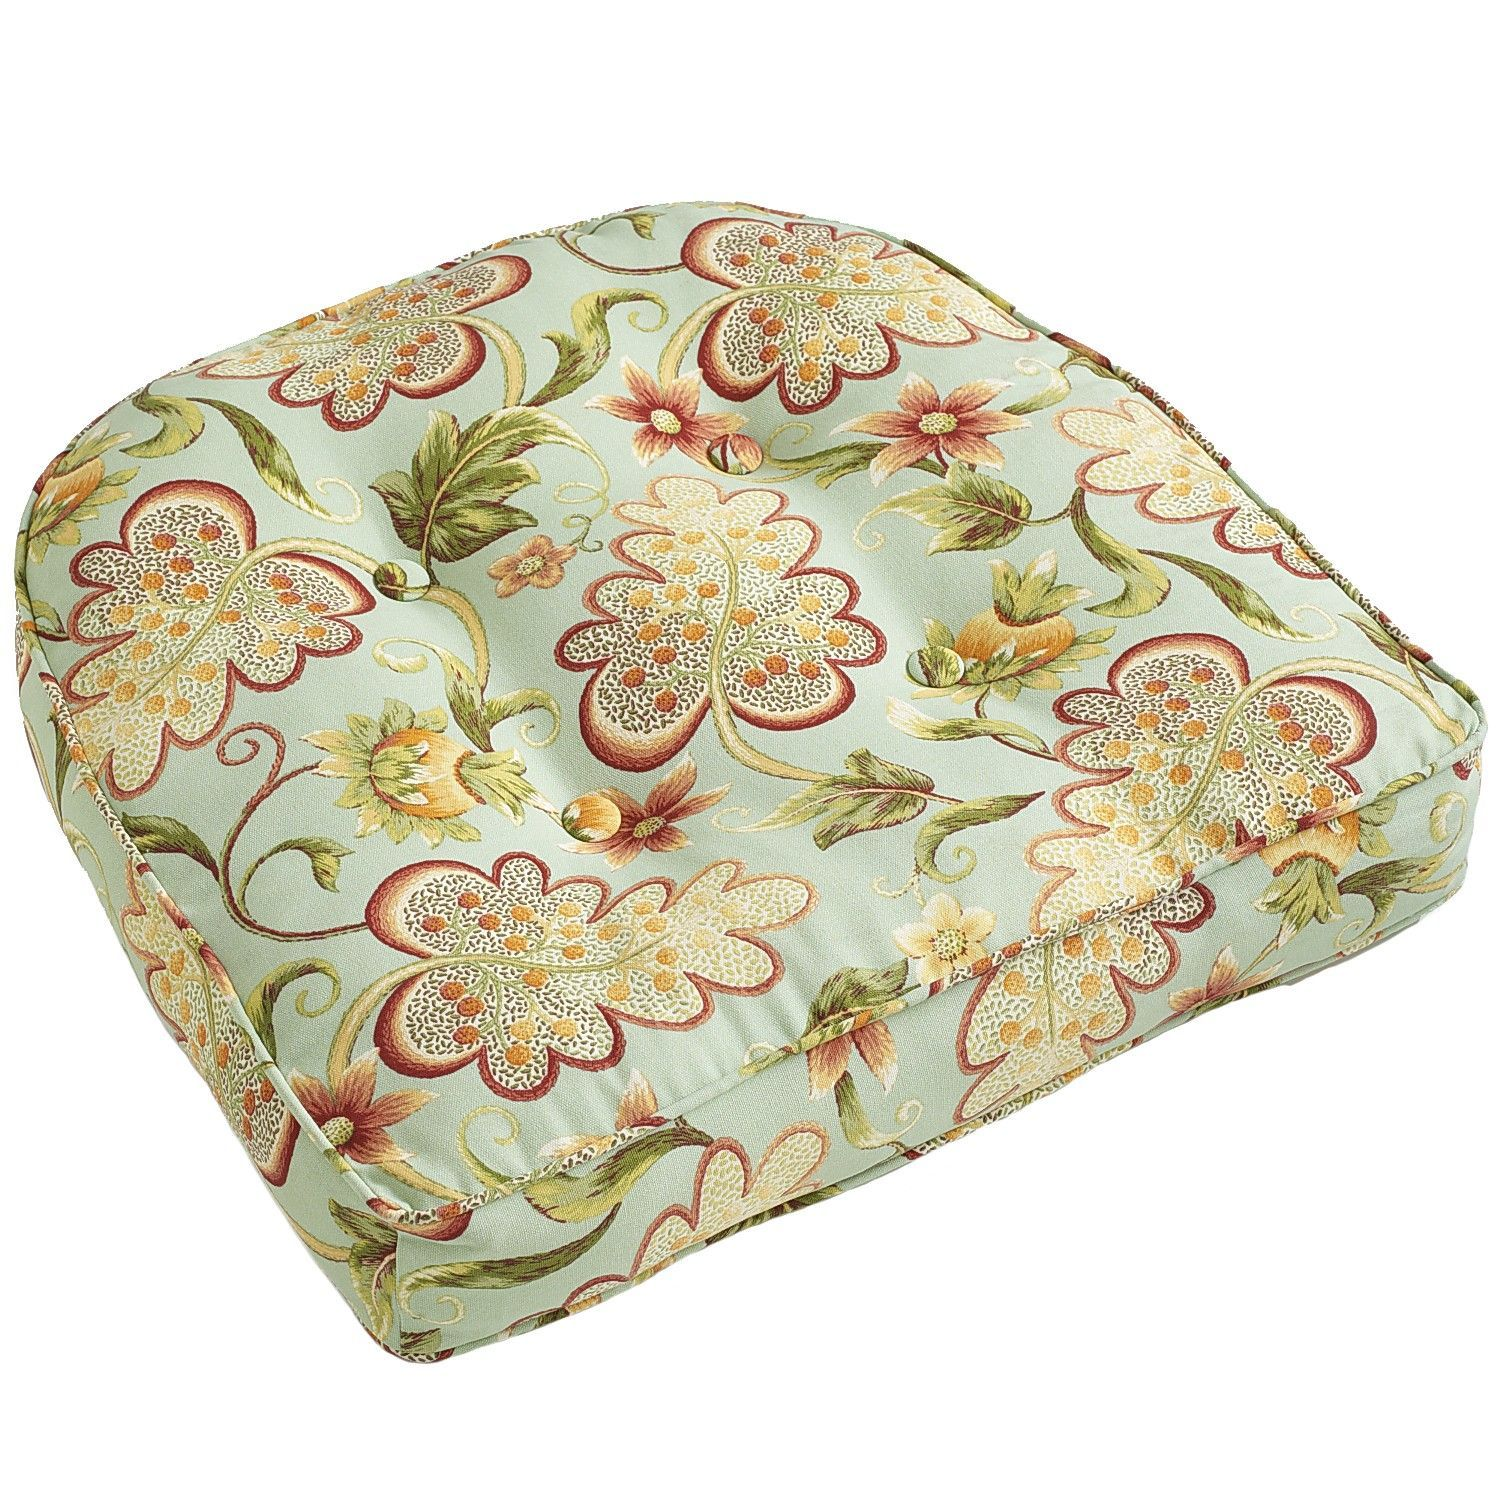 Angelique Deluxe Cushion Pier 1 Imports Outdoor Chair Cushions Chair Cushions Outdoor Seat Cushions